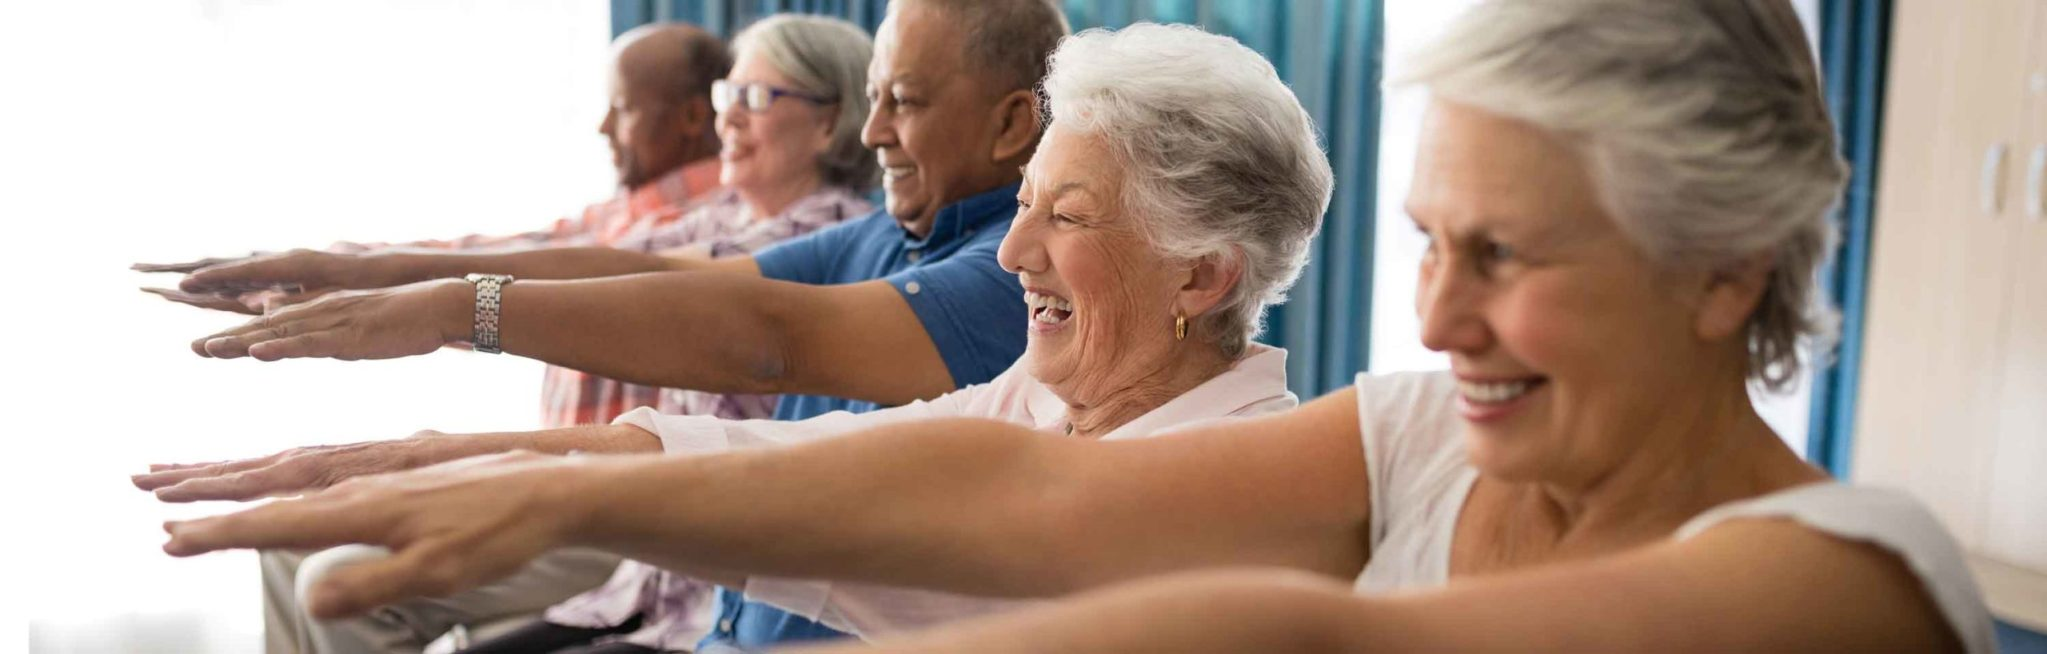 A group of seniors taking part in an exercise class, just one of the premium amenities and activities offered by Winchester Glen Retirement Community.